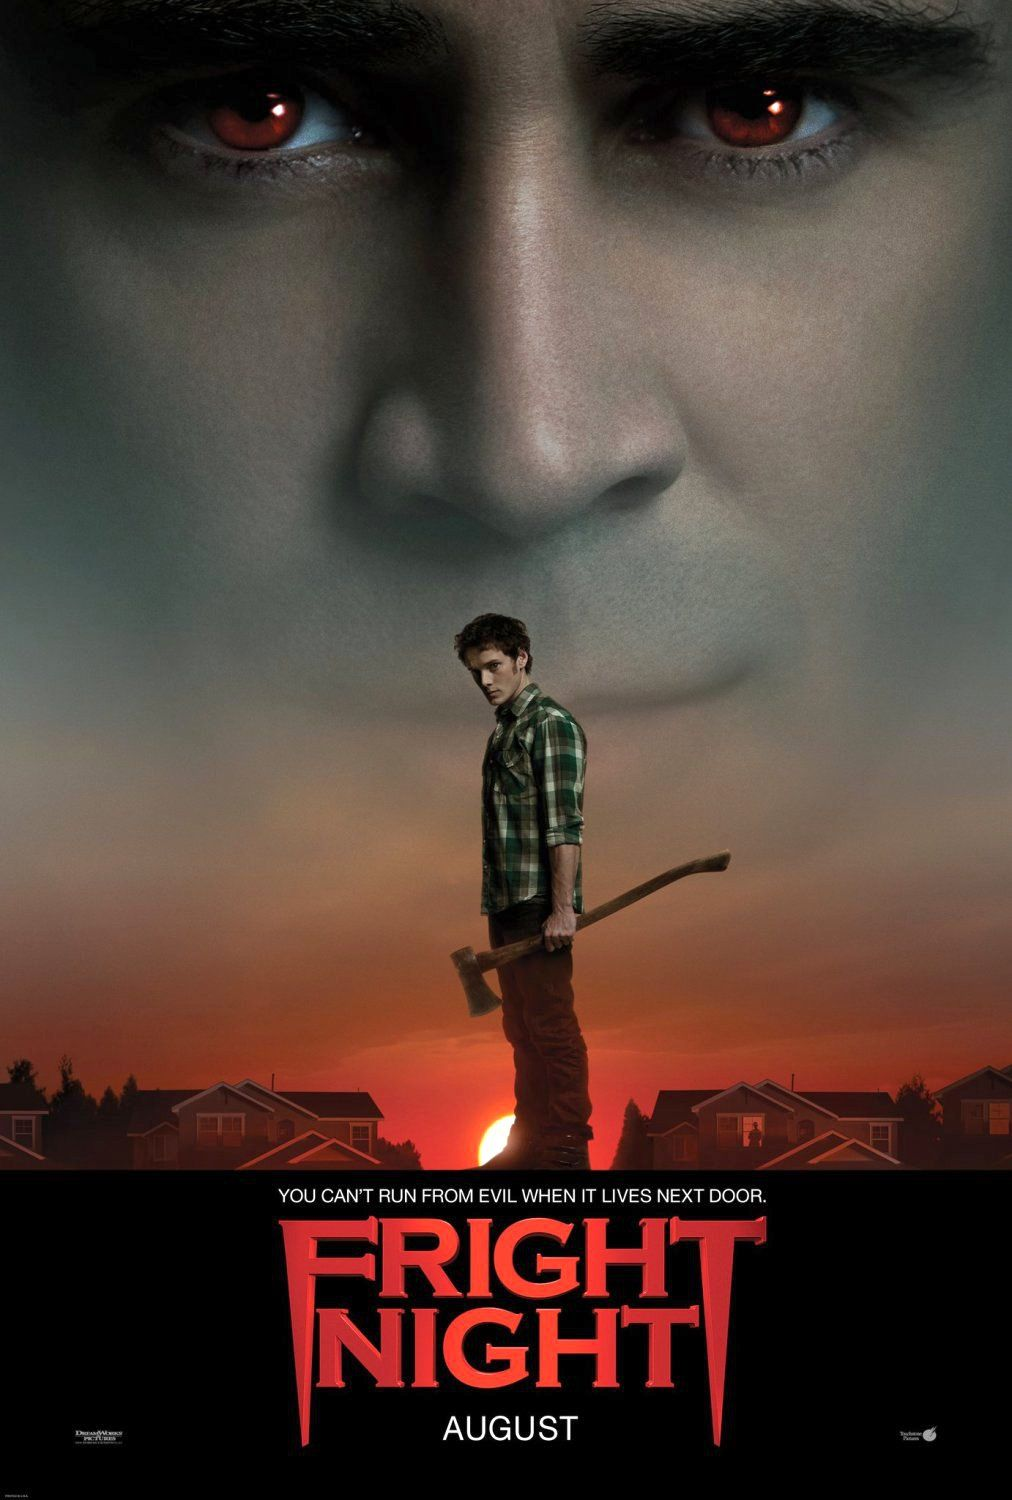 David tennant fright night seems excellent